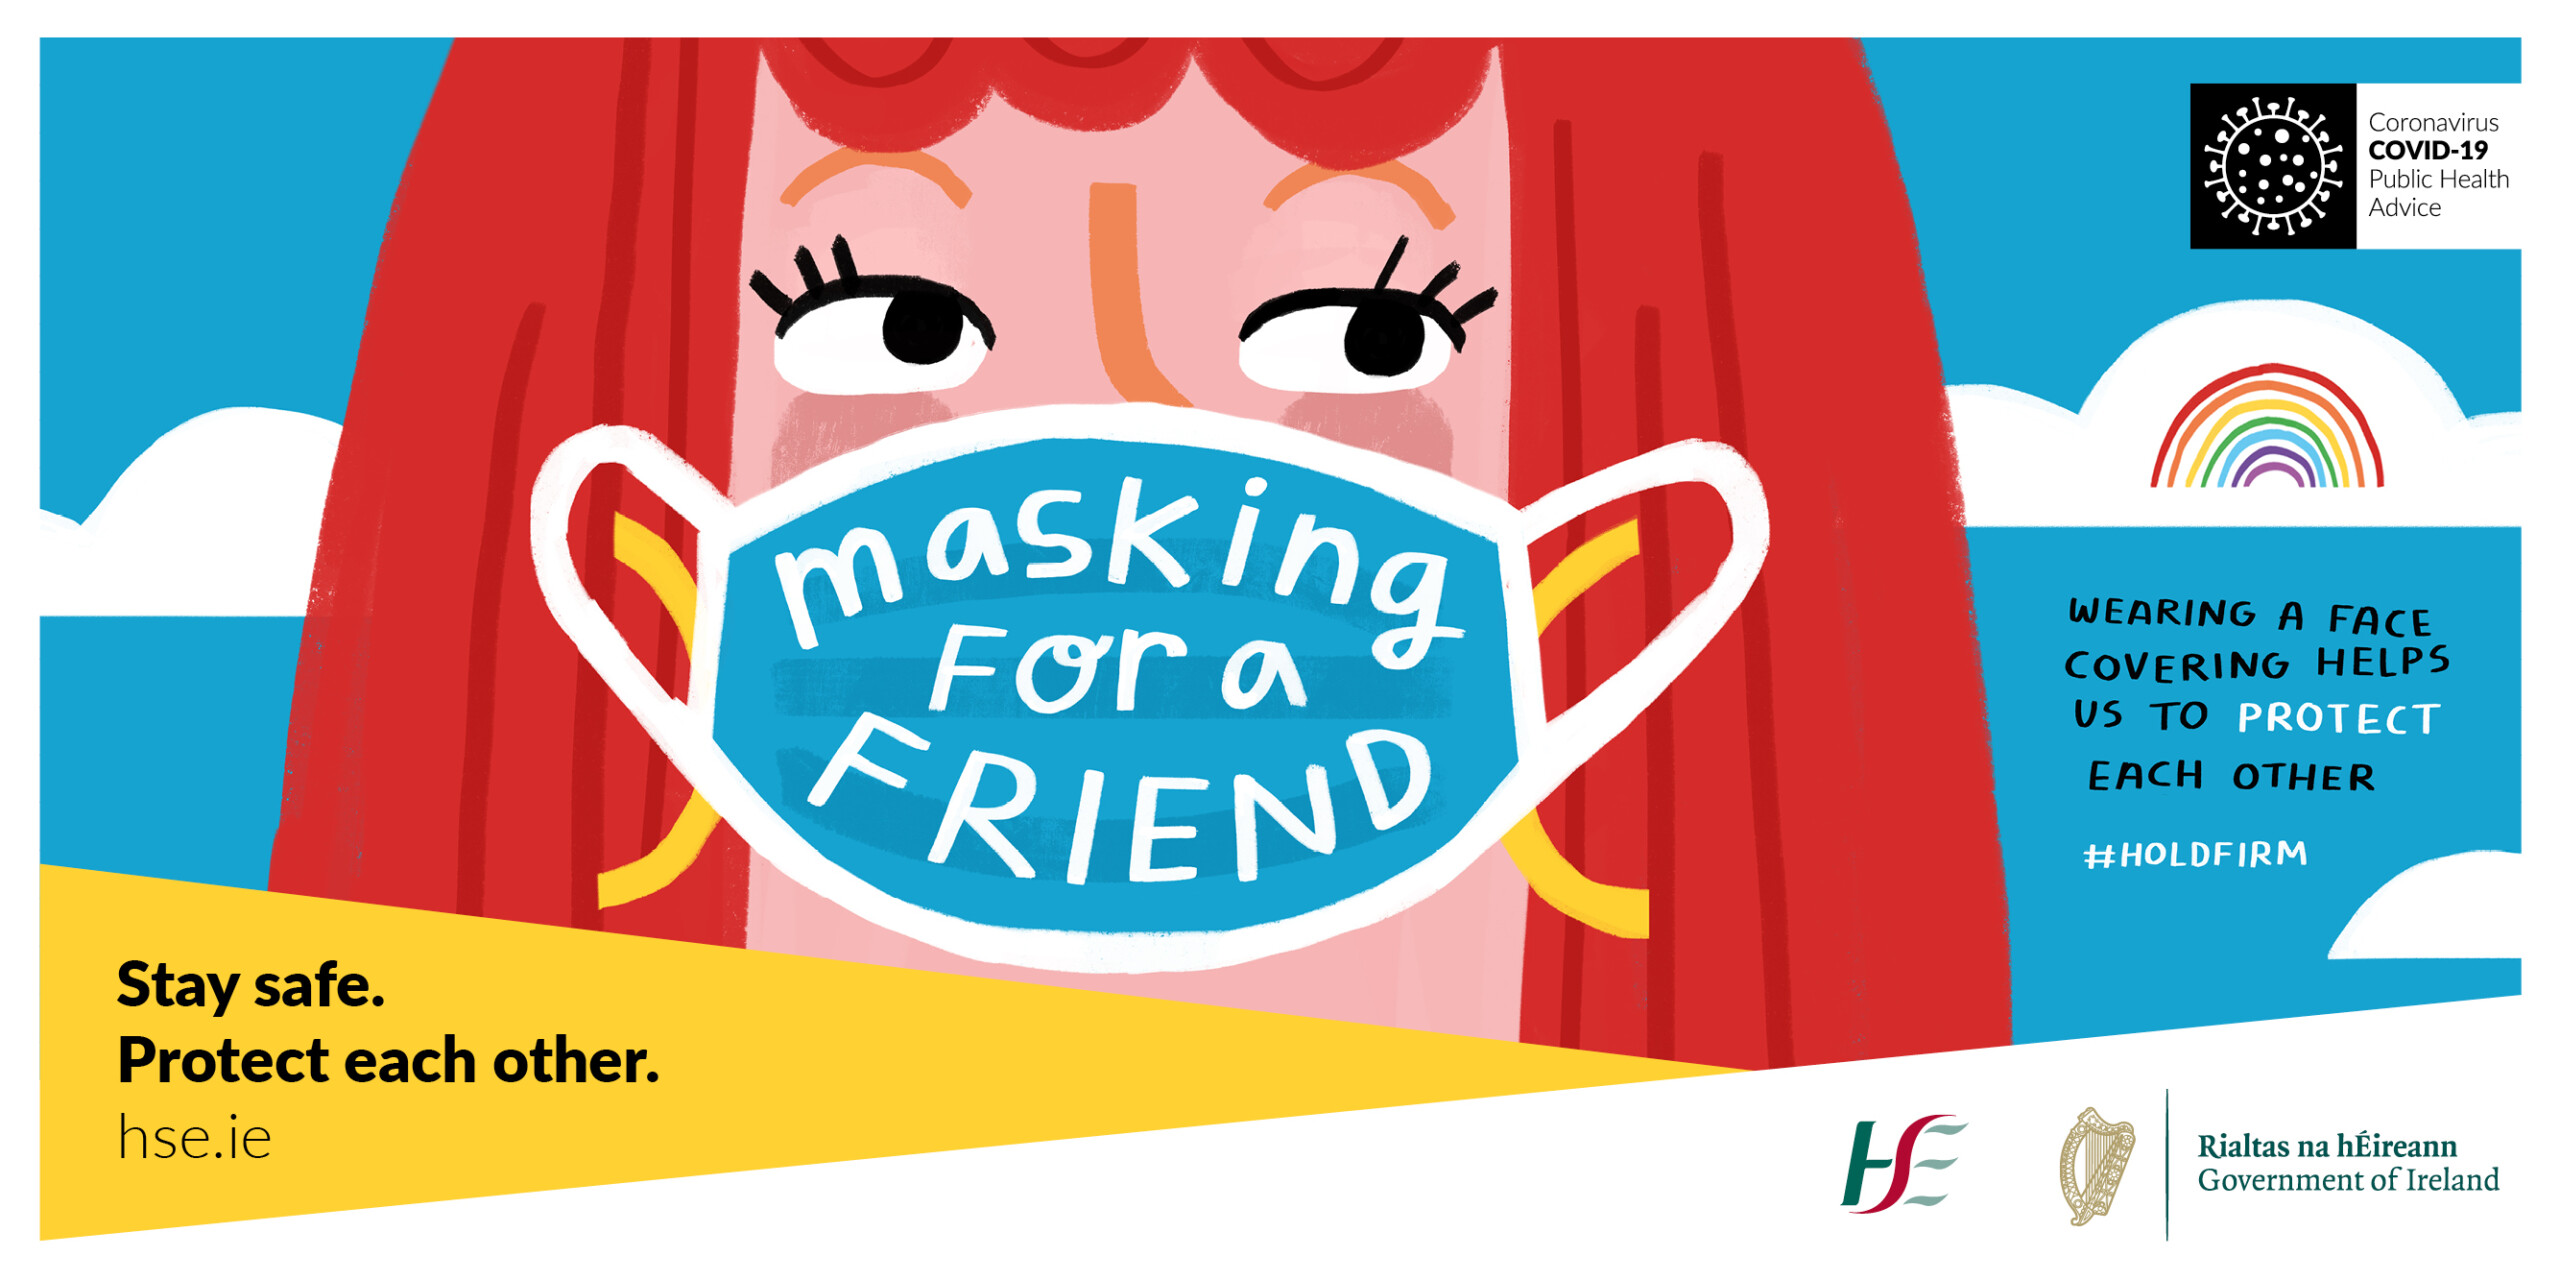 Masking for a friend HSE poster